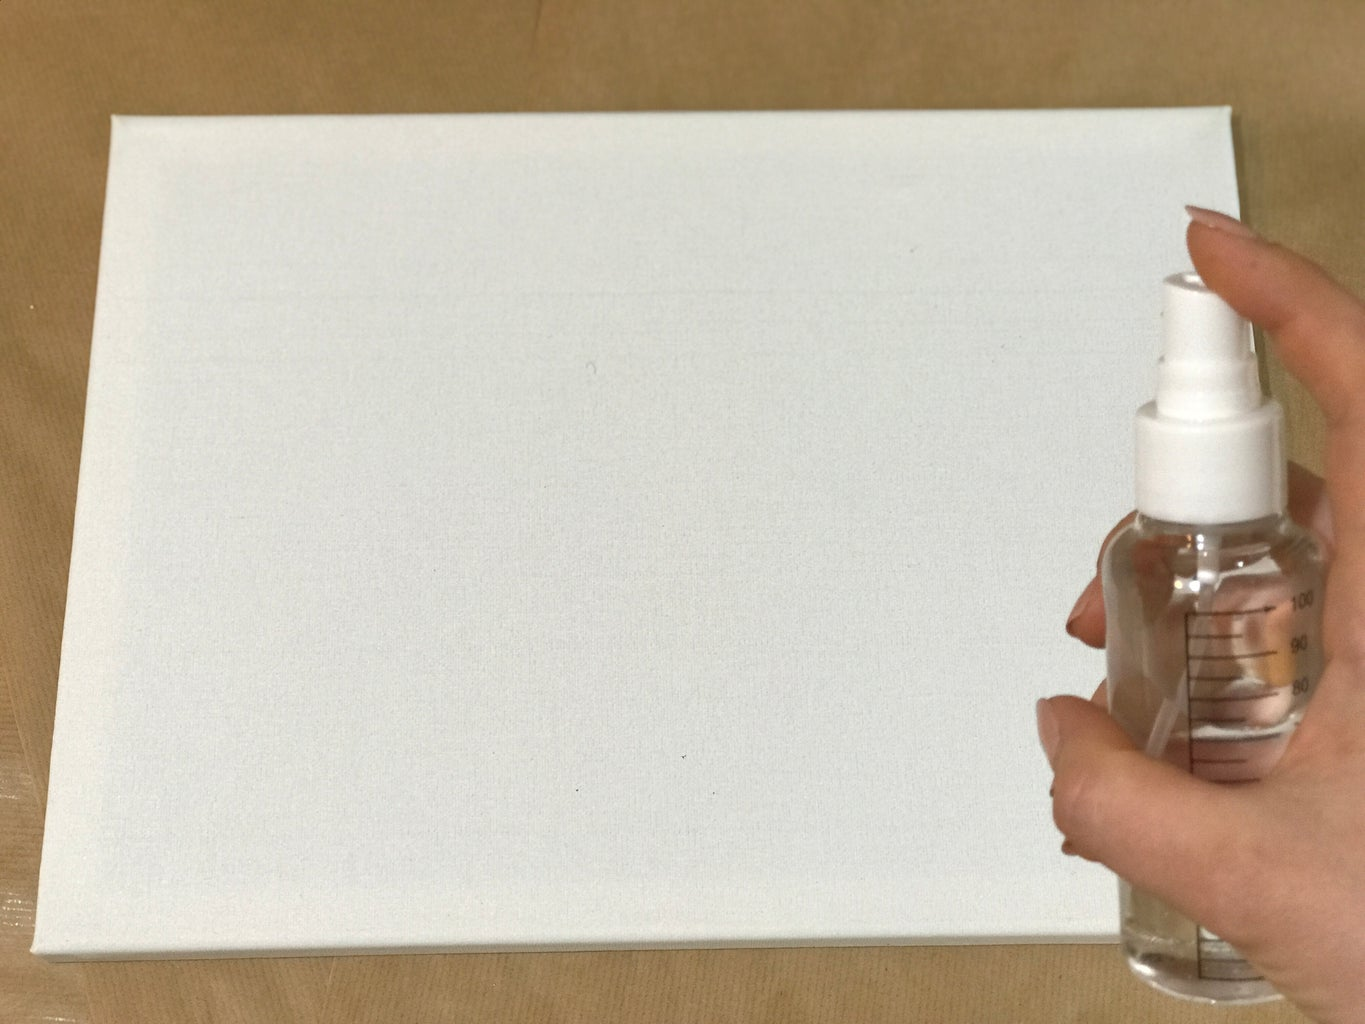 Spray You Canvas With Water and Wipe the Excess With a Sponge.